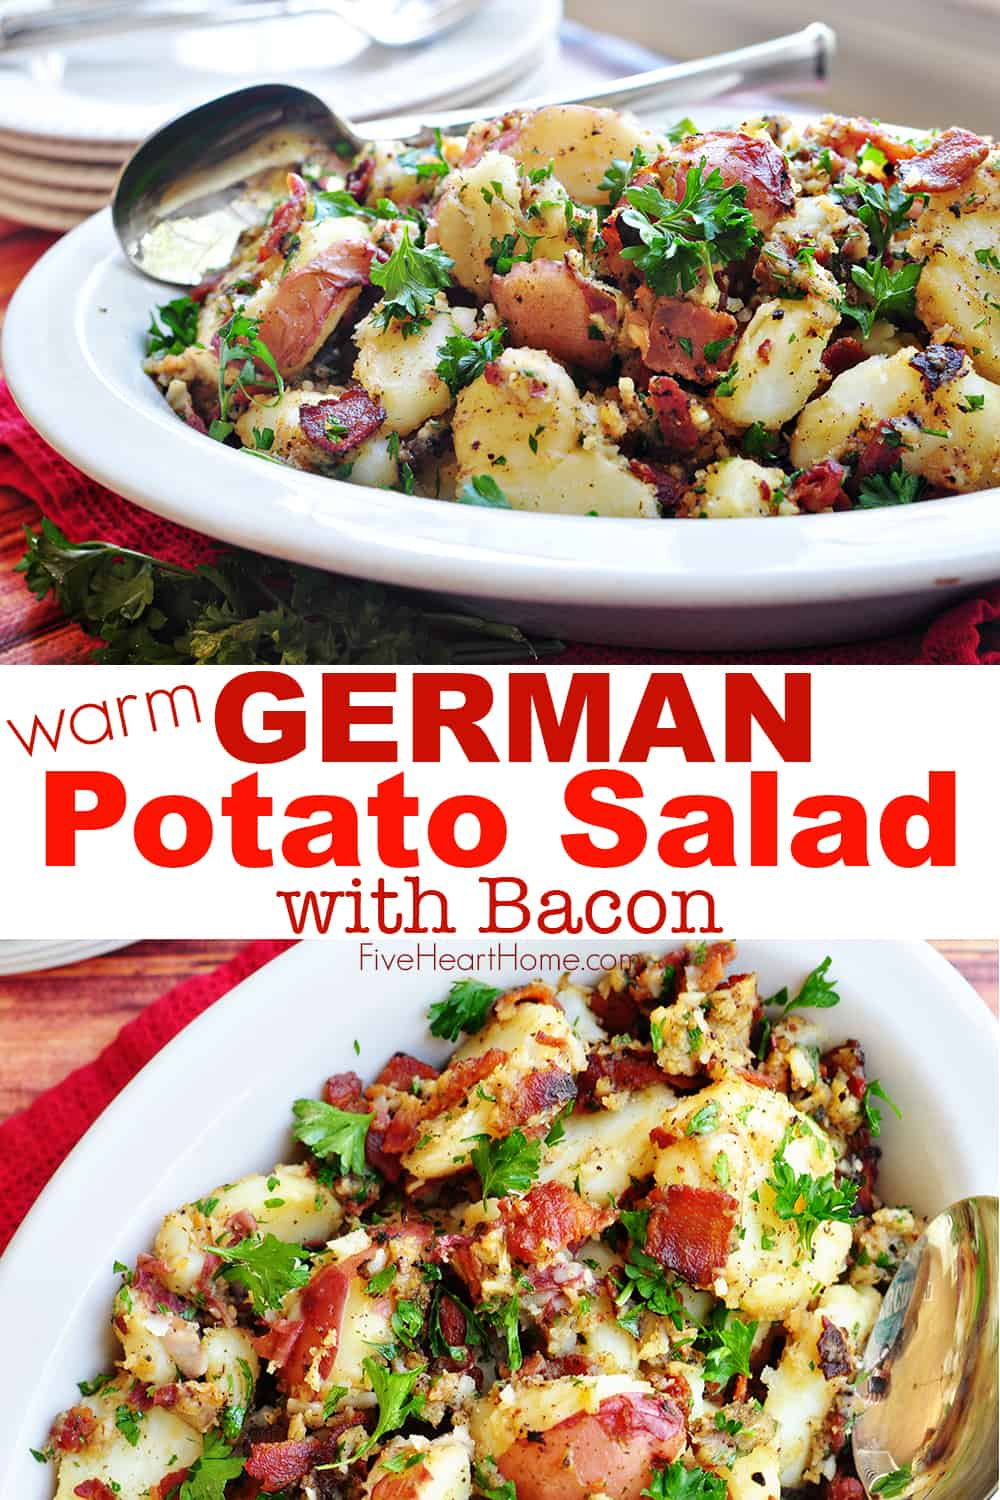 Warm German Potato Salad with Bacon collage with text